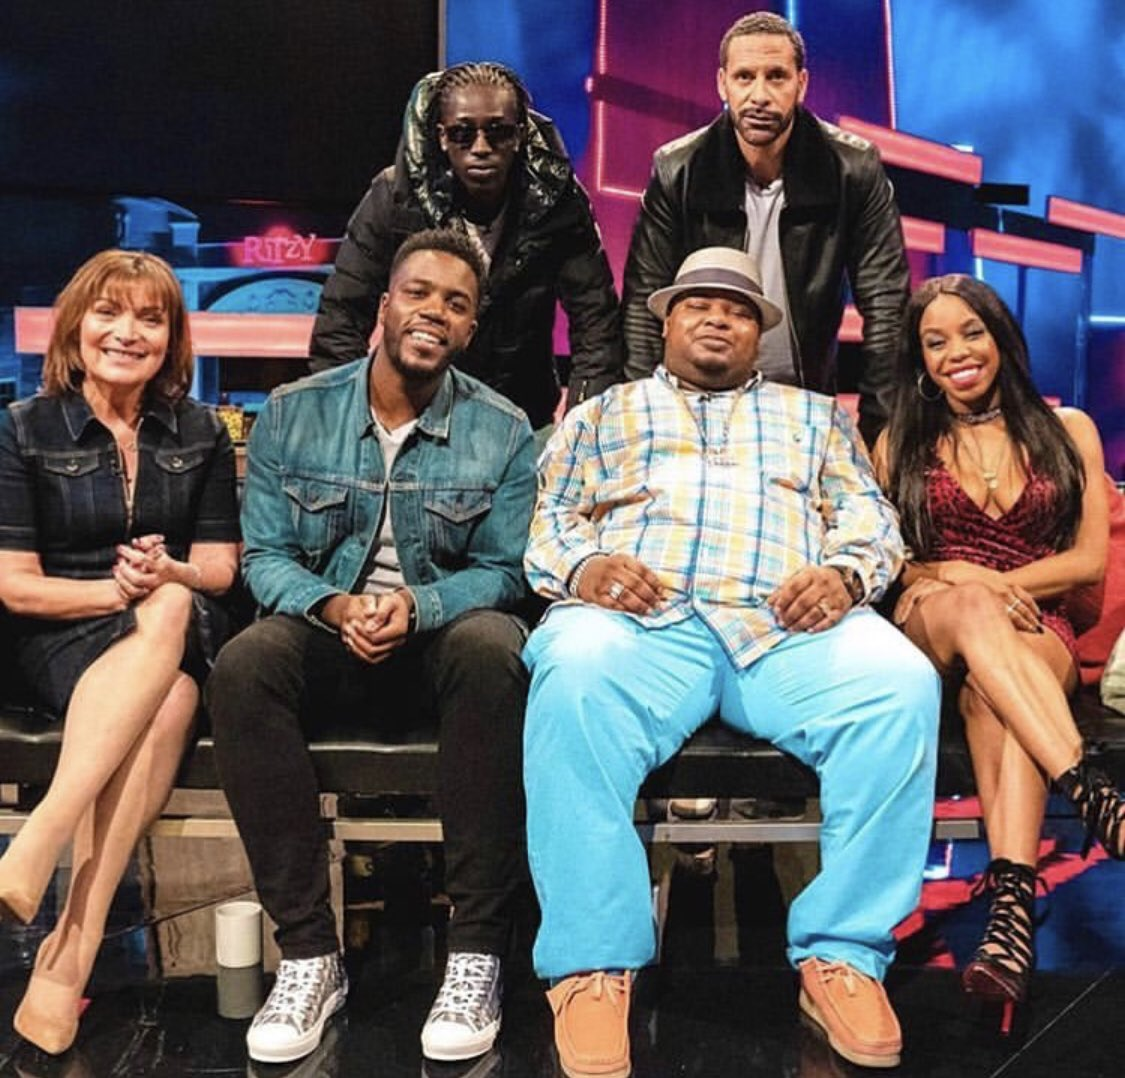 It's the final episode of #TheBigNarstieShow tune in at 11:05pm guests include @rioferdy5 @lorraine @TheLondonHughes & @unknwnt9 only on @Channel4